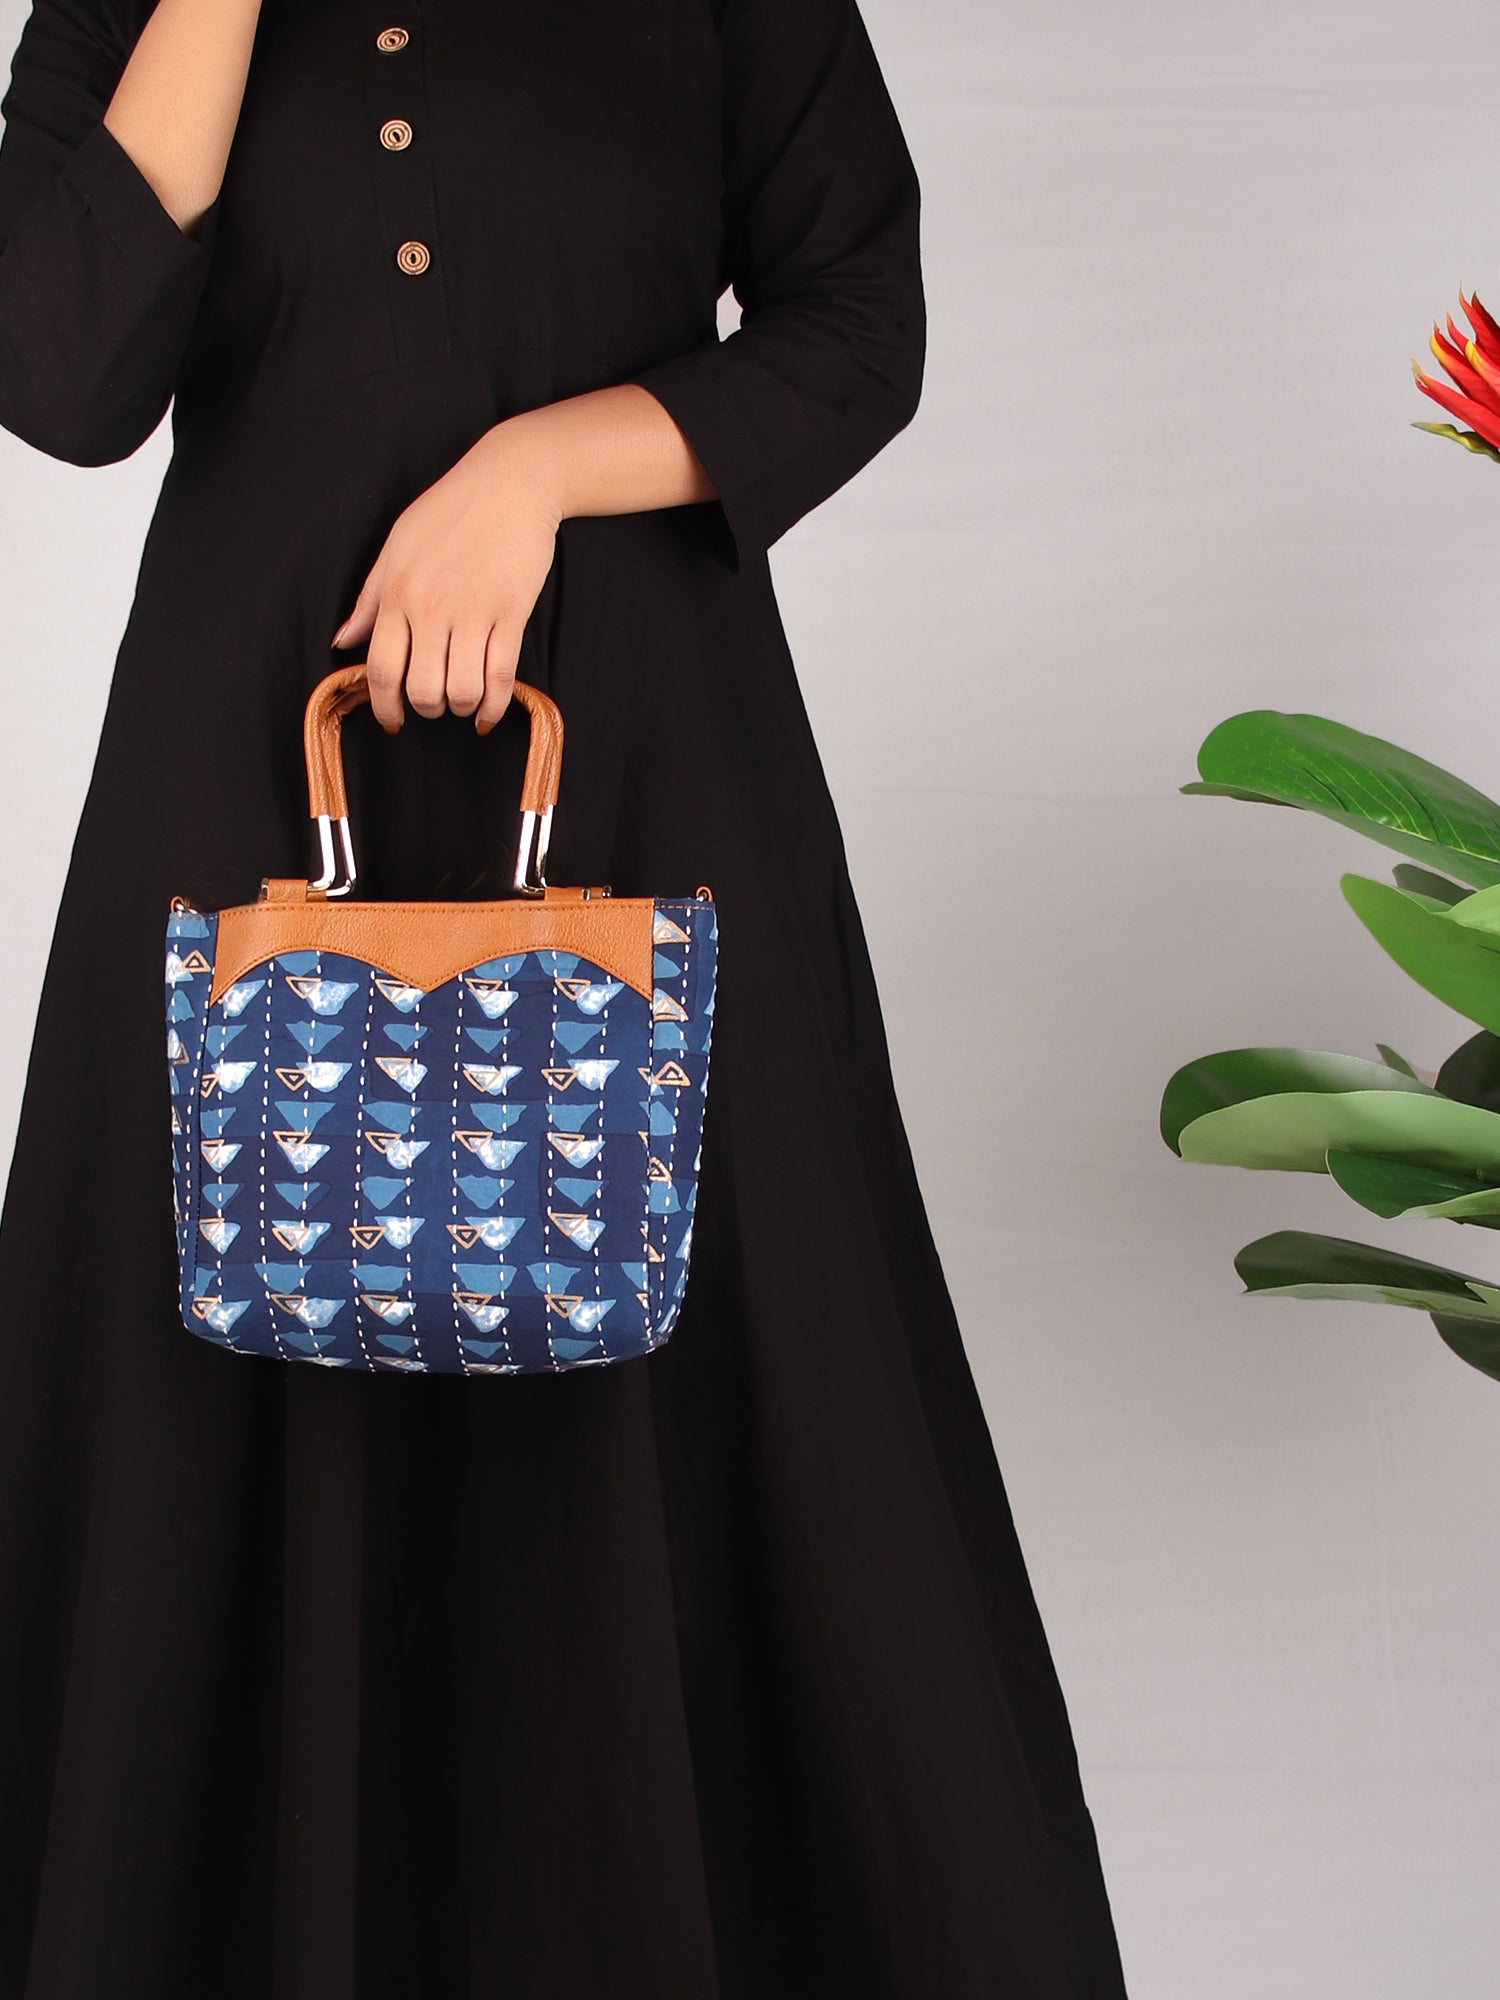 BLUE PYRAMID PRINT HANDBAG WITH HANDLE